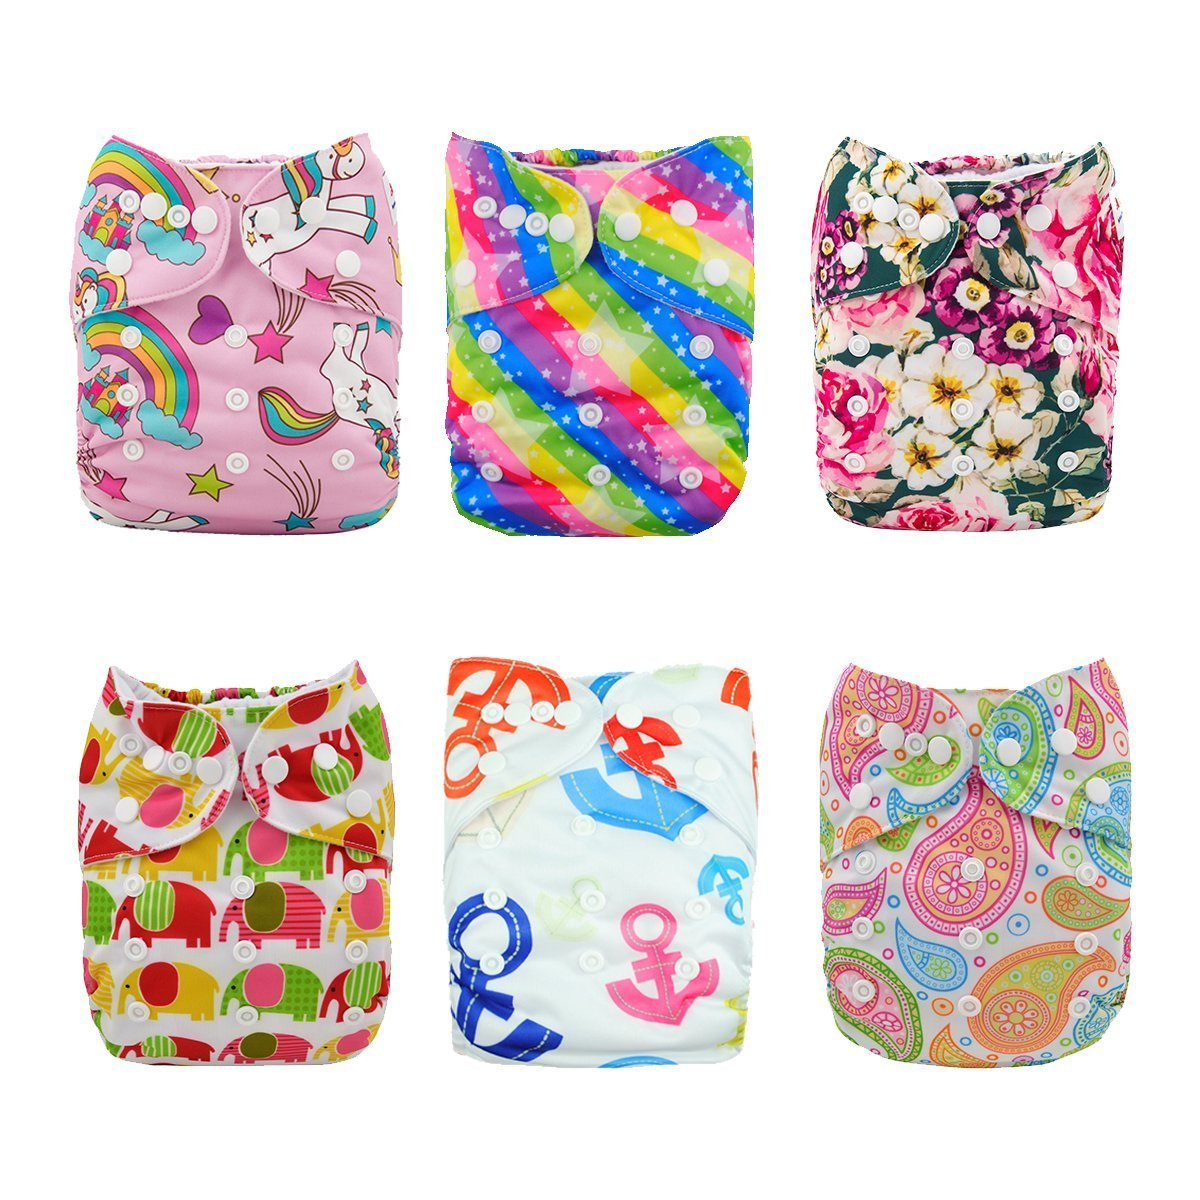 ALVABABY Reuseable Washable Pocket 6 Cloth Diapers + 12 Inserts (Girl Color)6DM18 by ALVA